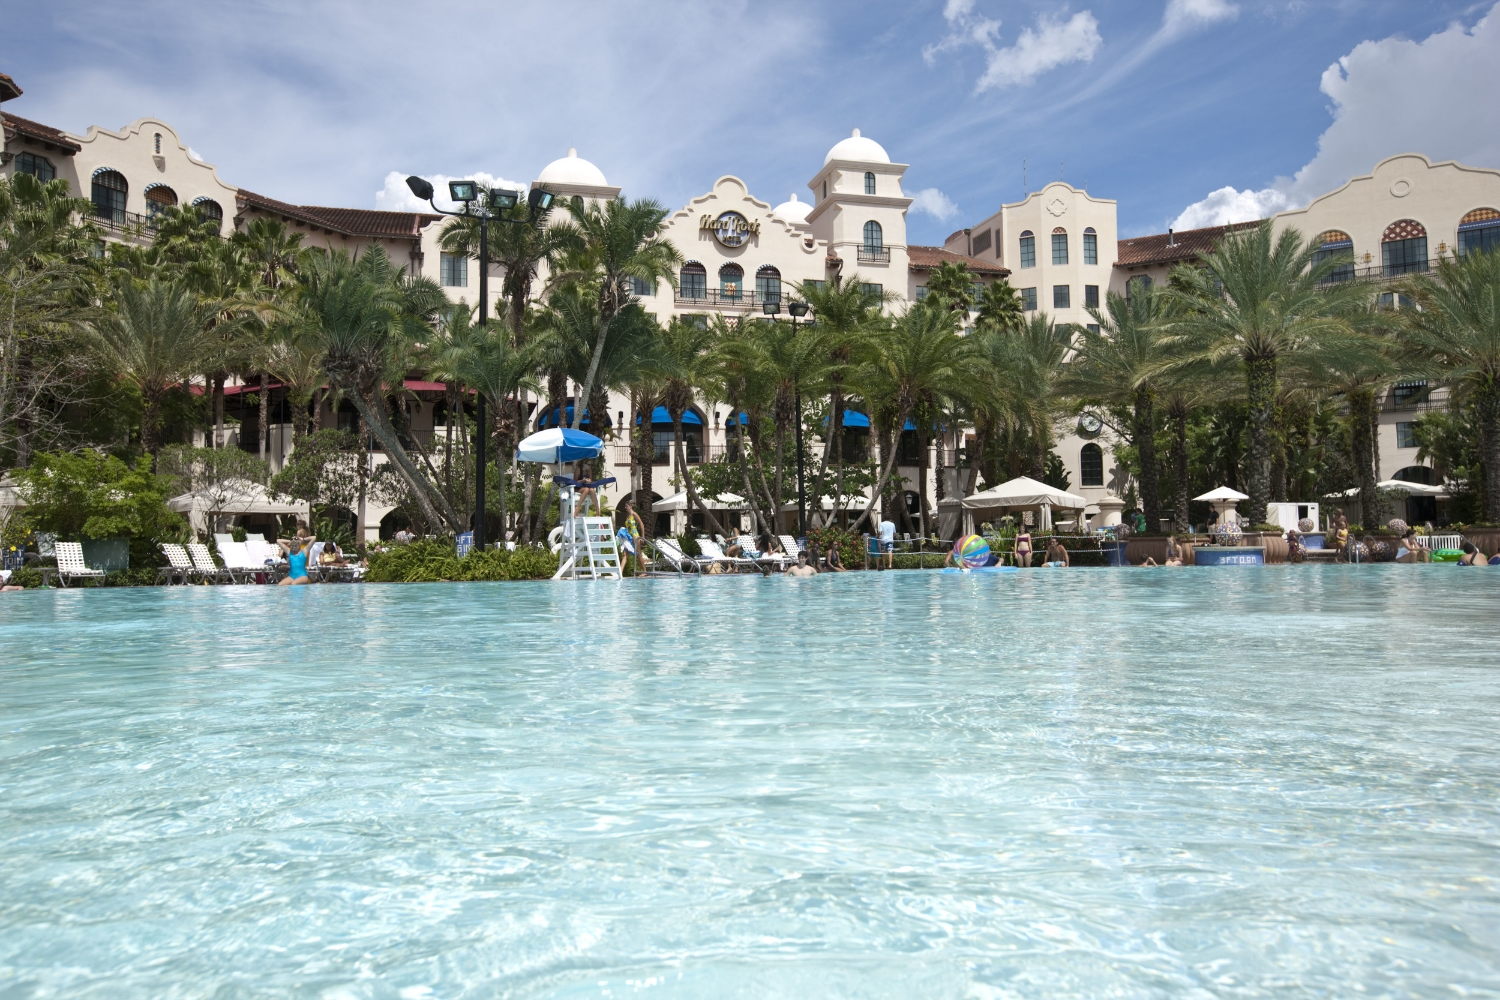 Hard Rock Hotel pool. Image credit: Universal Orlando Resort.